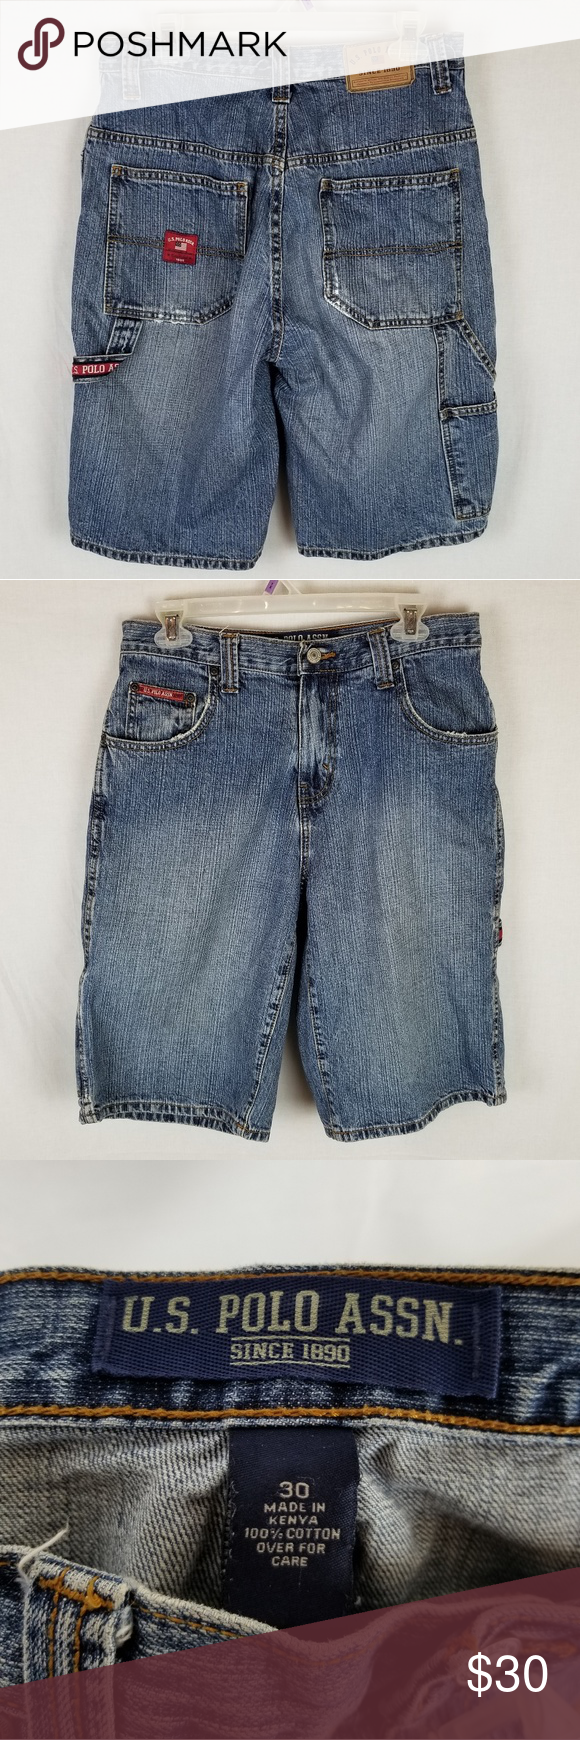 Us Polo Assn 1890 Jeans Off 77 Buy